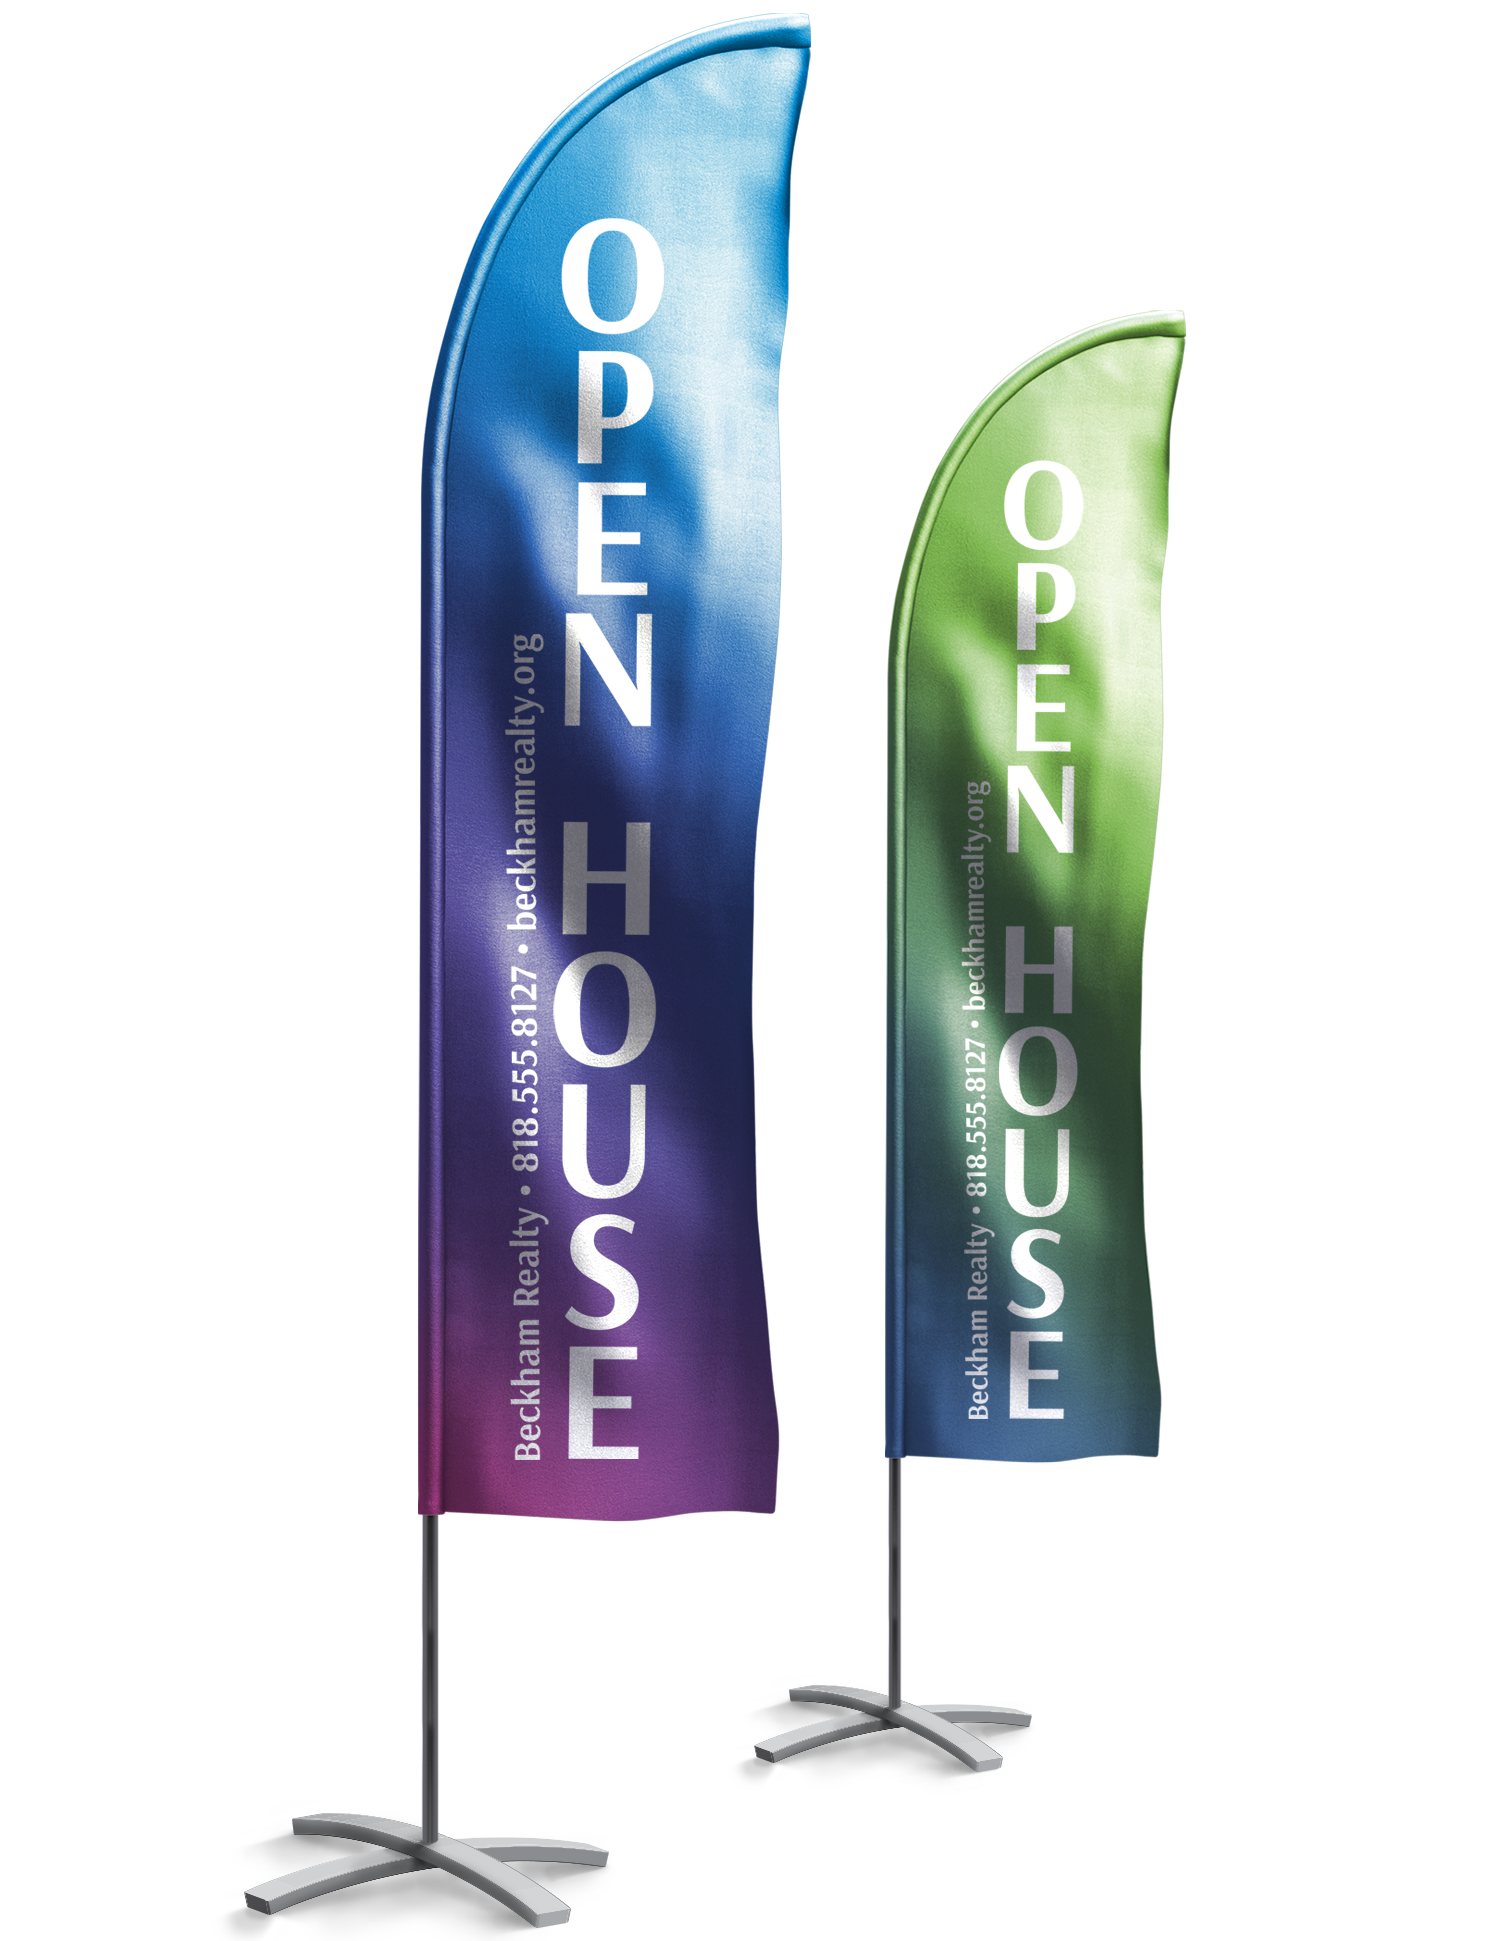 Feather Flags printed in Lancaster, Palmdale - JR'S Handling print and mail services